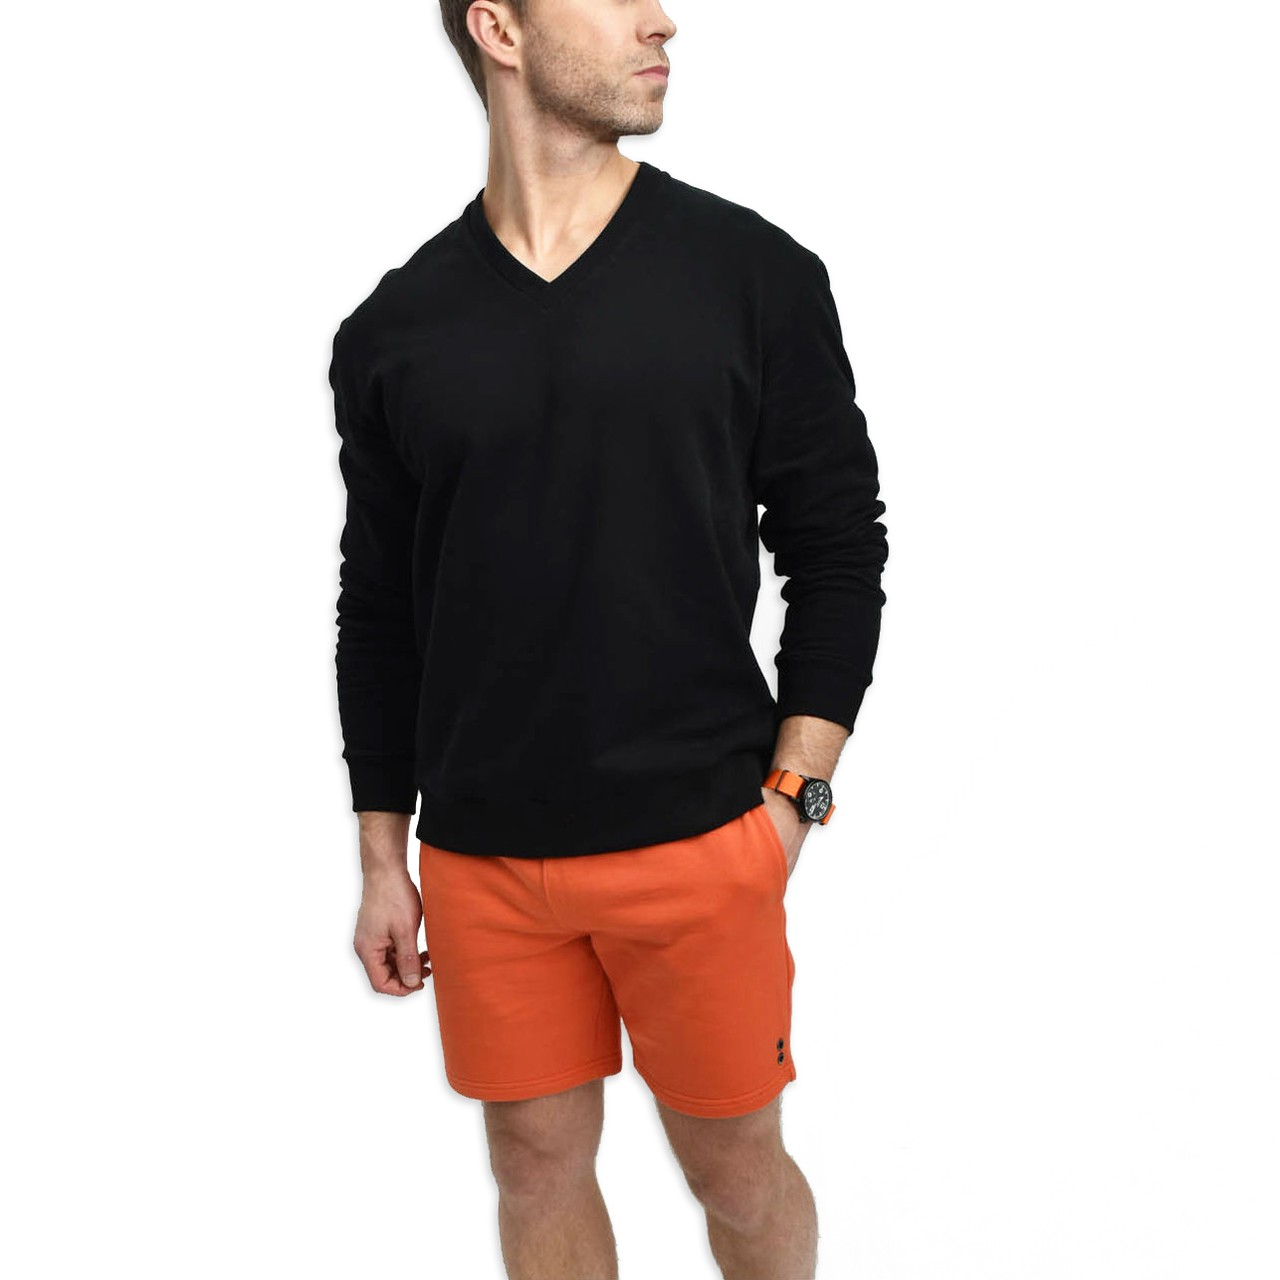 The White Briefs Salve v-neck sweater in black